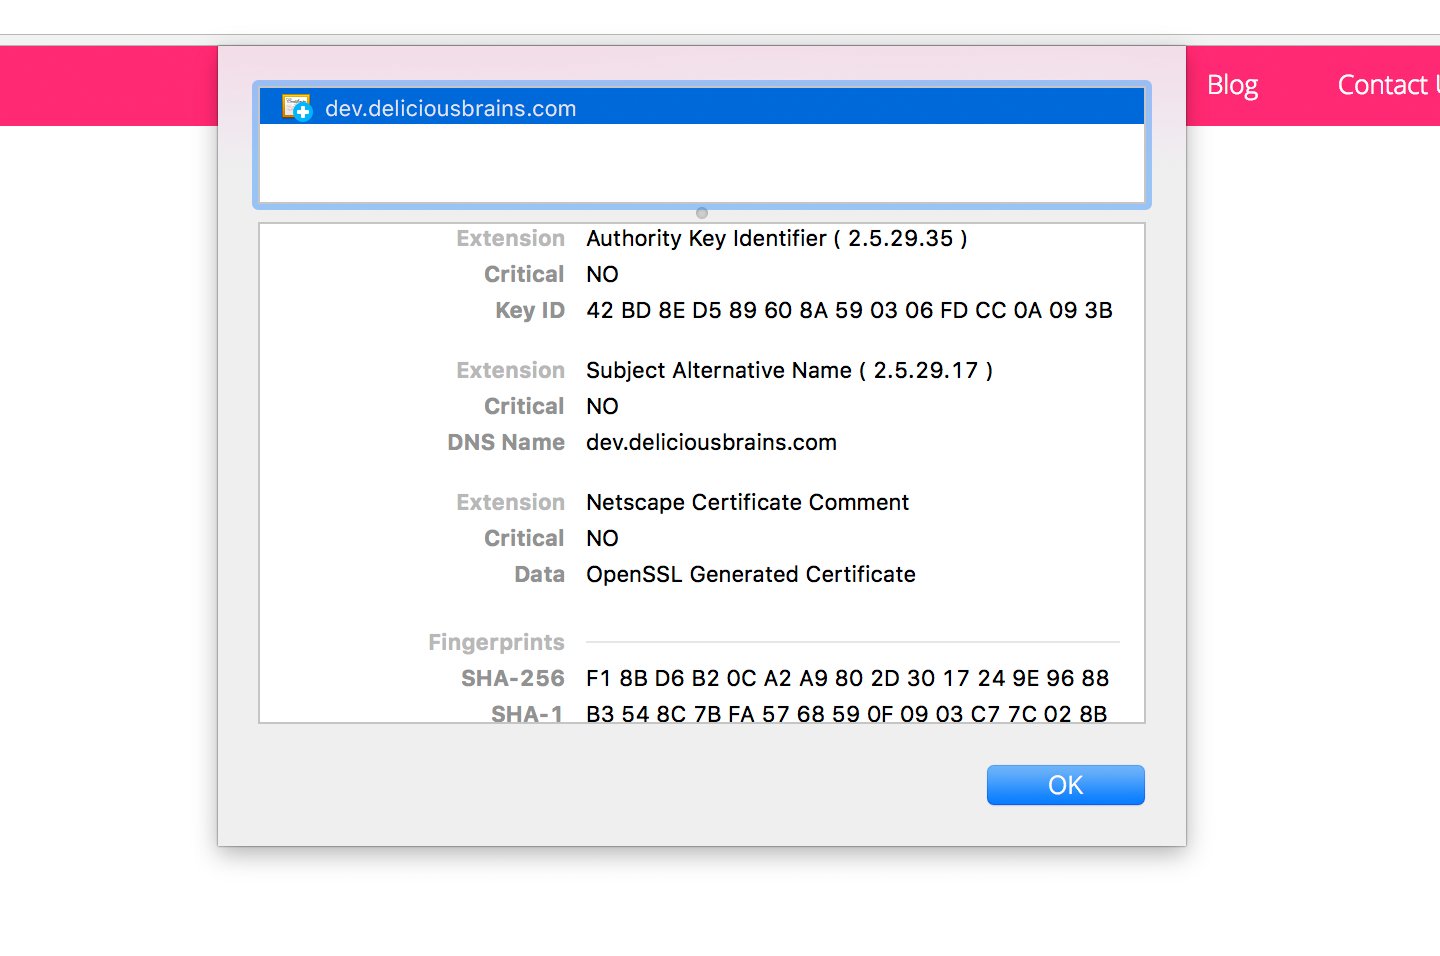 Screenshot of Chrome browser showing expanded details of self-signed certificate